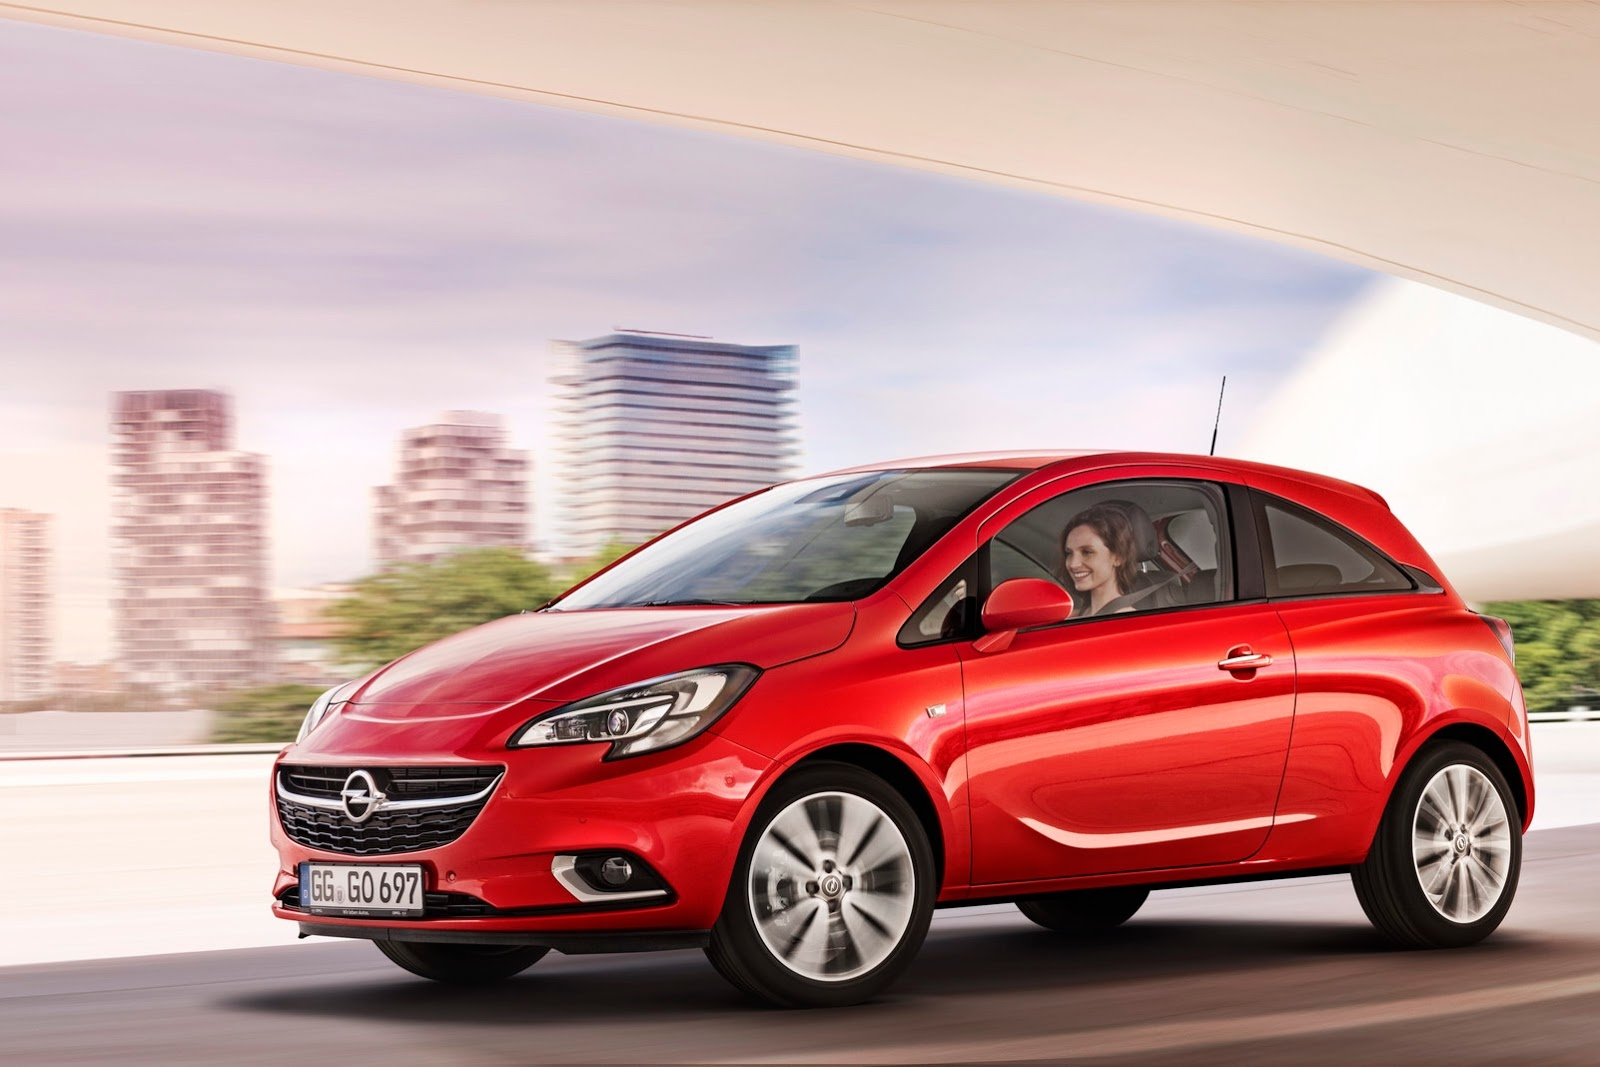 2015 Opel Corsa New Model Iphone Wallpaper #43238 Opel Car